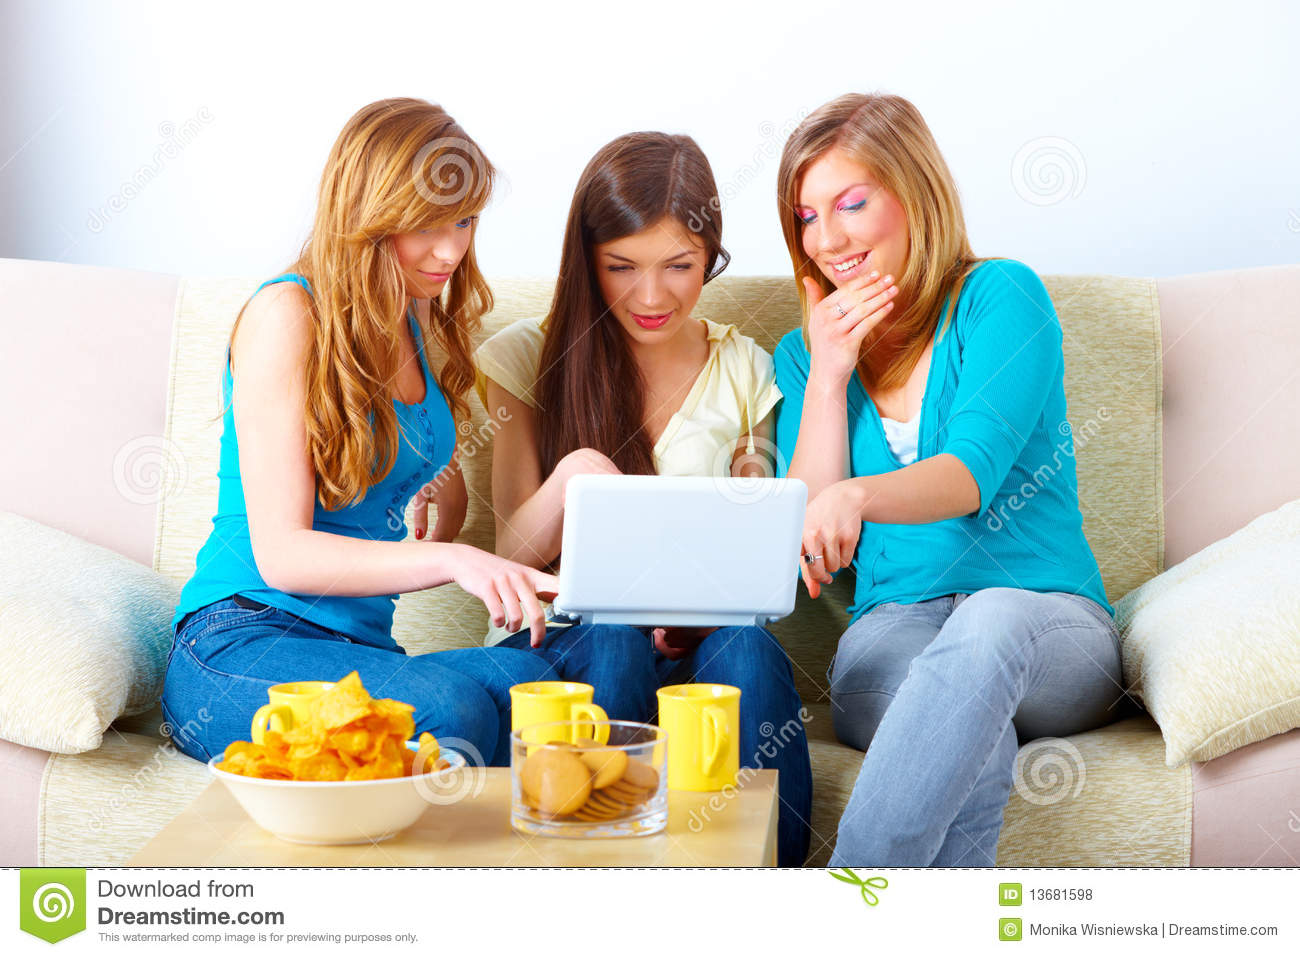 meeting a girl online dating Learn how to write a better first message in online dating  dating, first messages where i asked the girl out were uncommon  shy when first meeting.